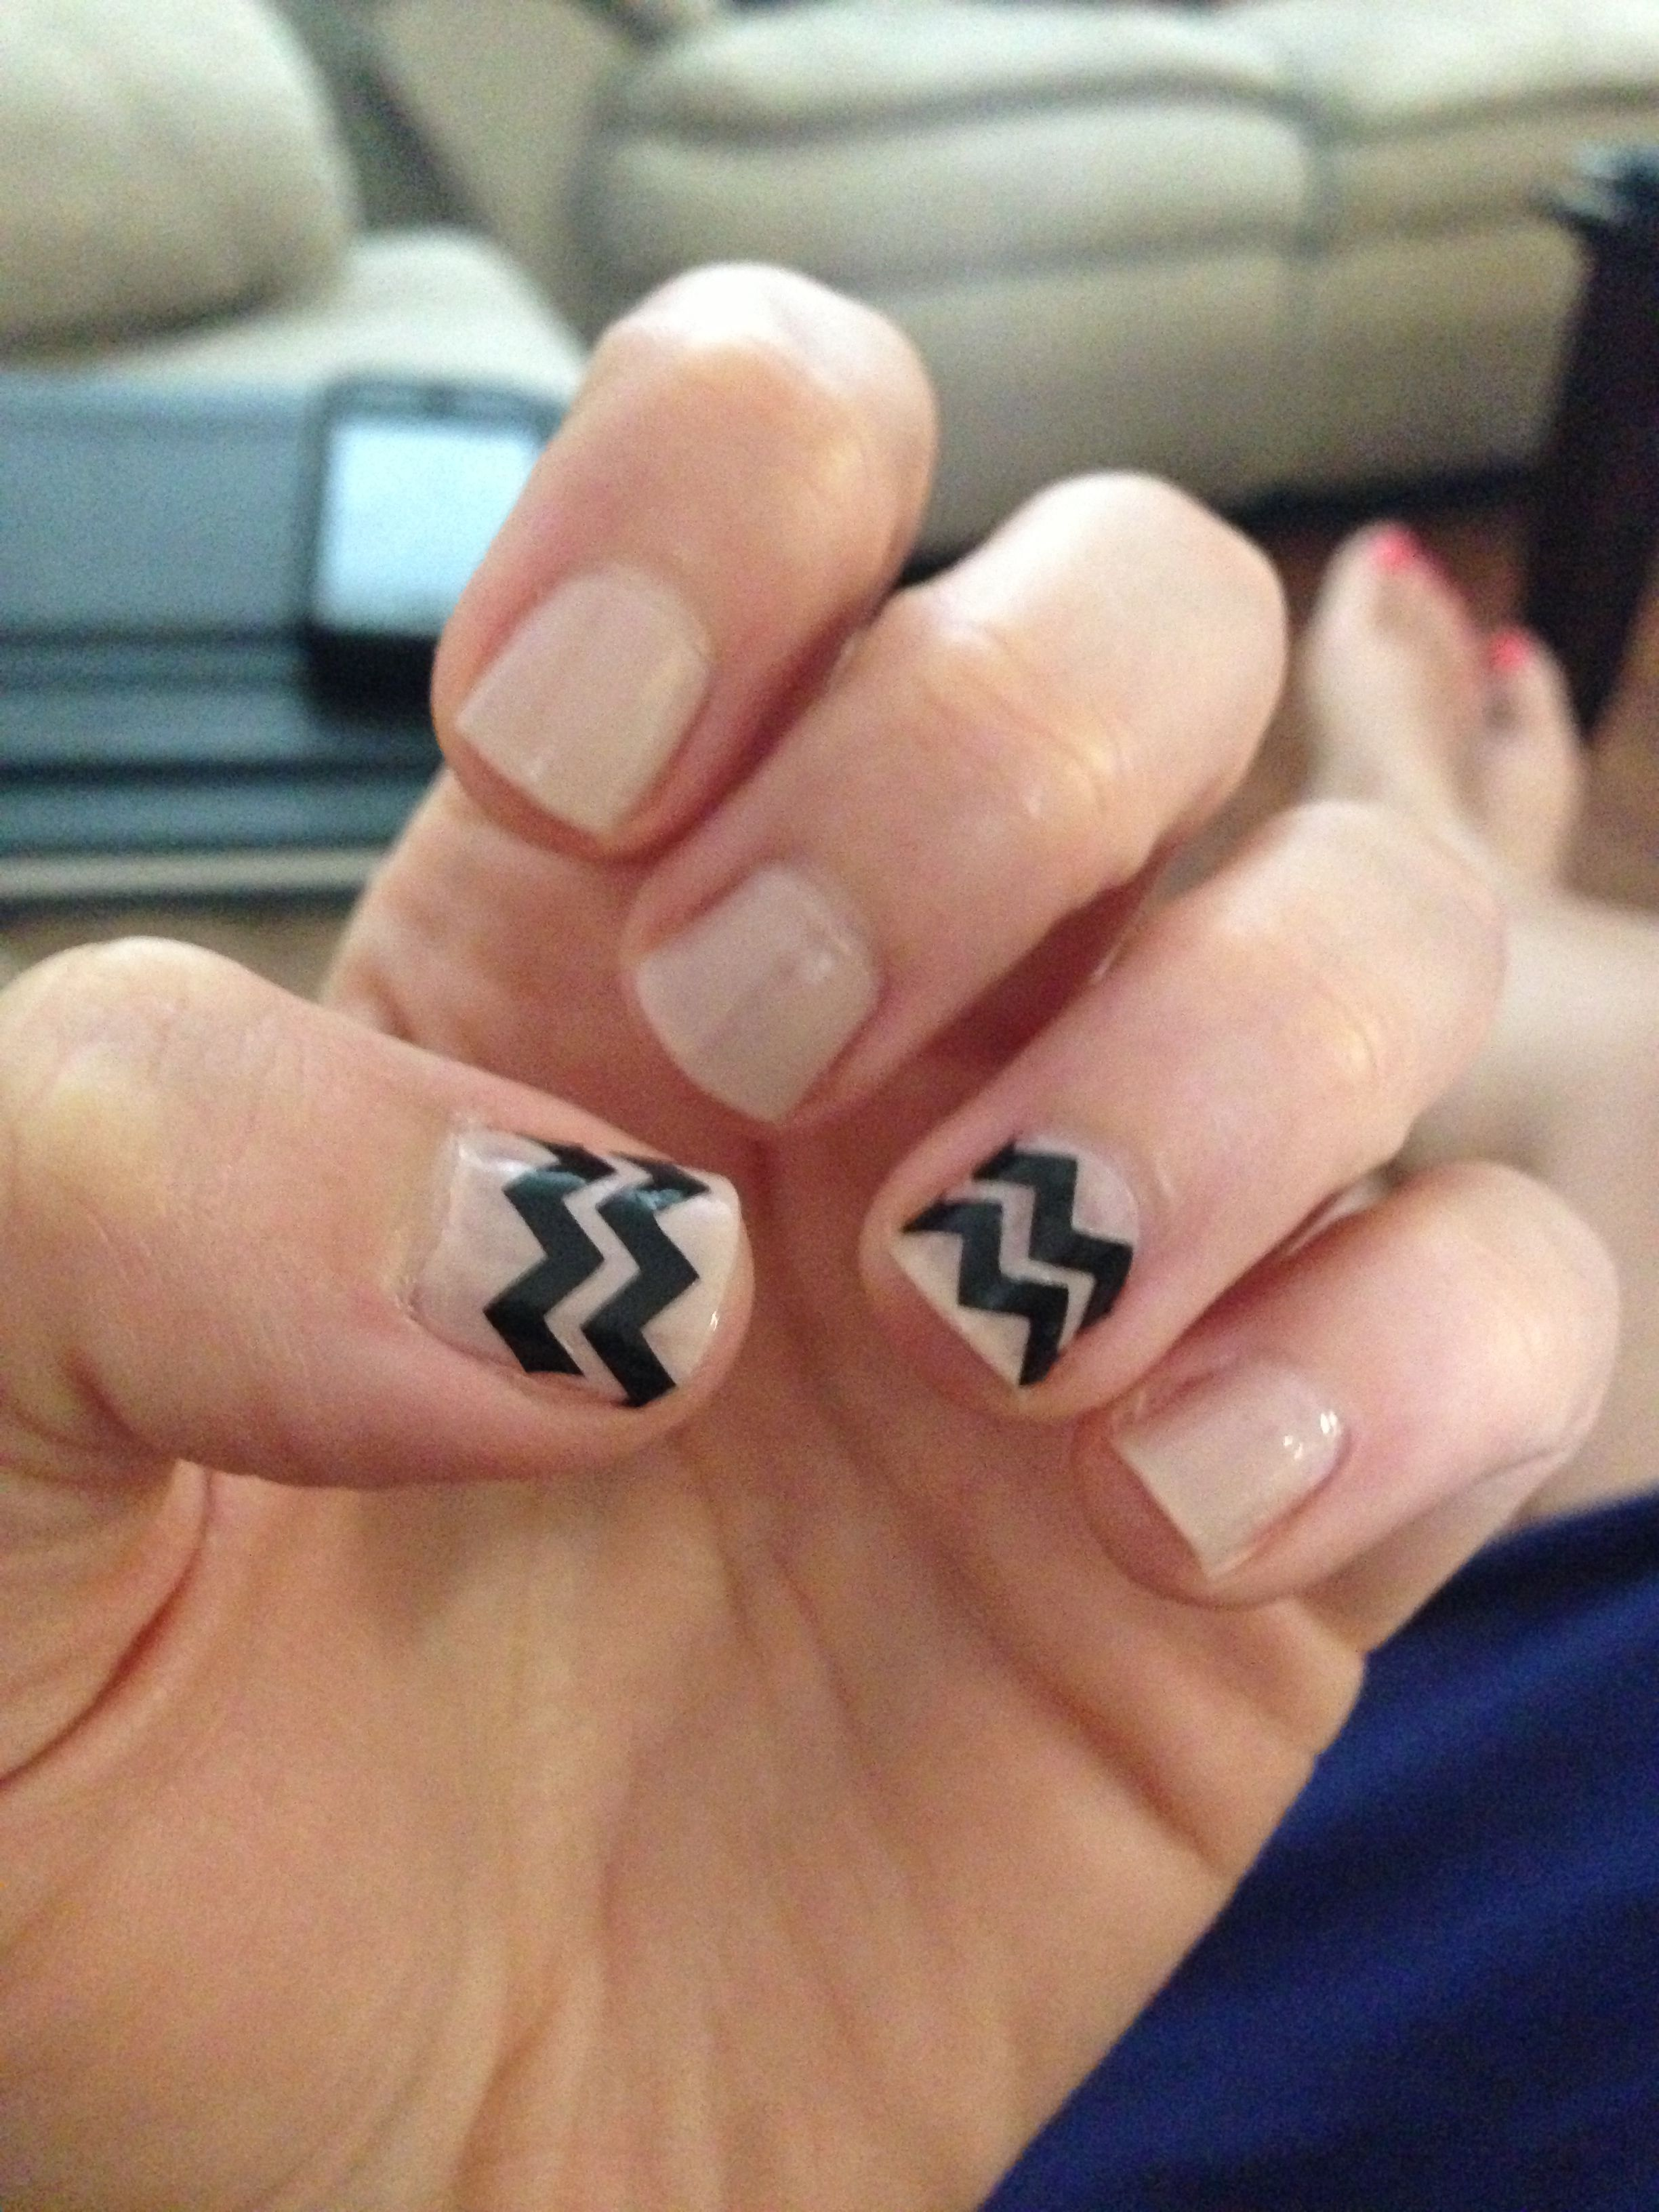 Nude chevron Nail art!